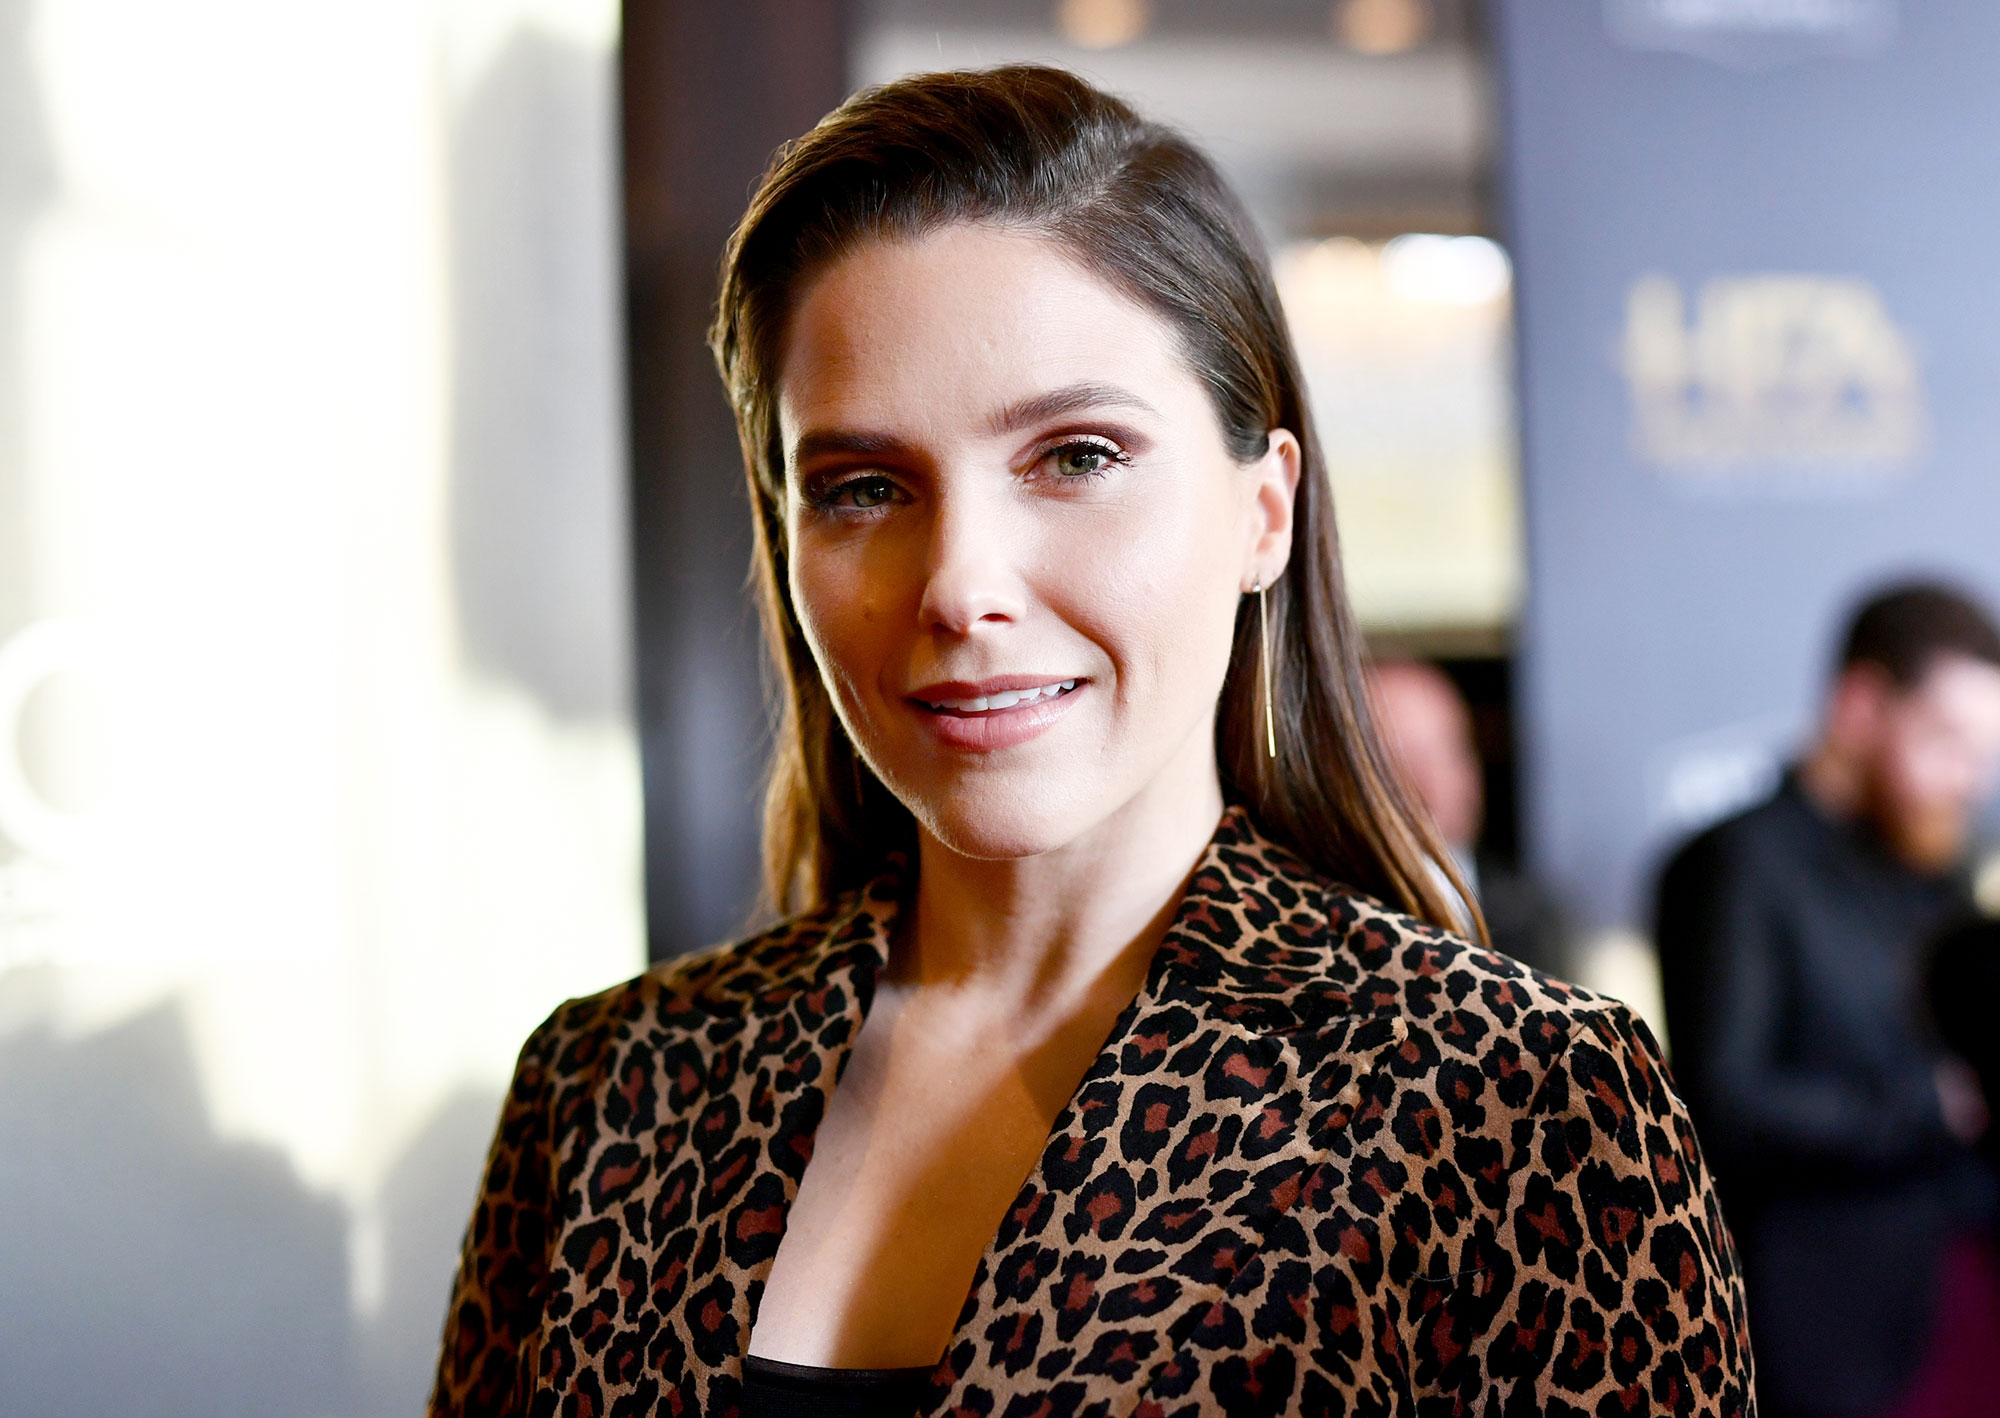 Sophia Bush - Sophia Bush attends the 22nd Annual Hollywood Film Awards at The Beverly Hilton Hotel on November 4, 2018 in Beverly Hills, California.